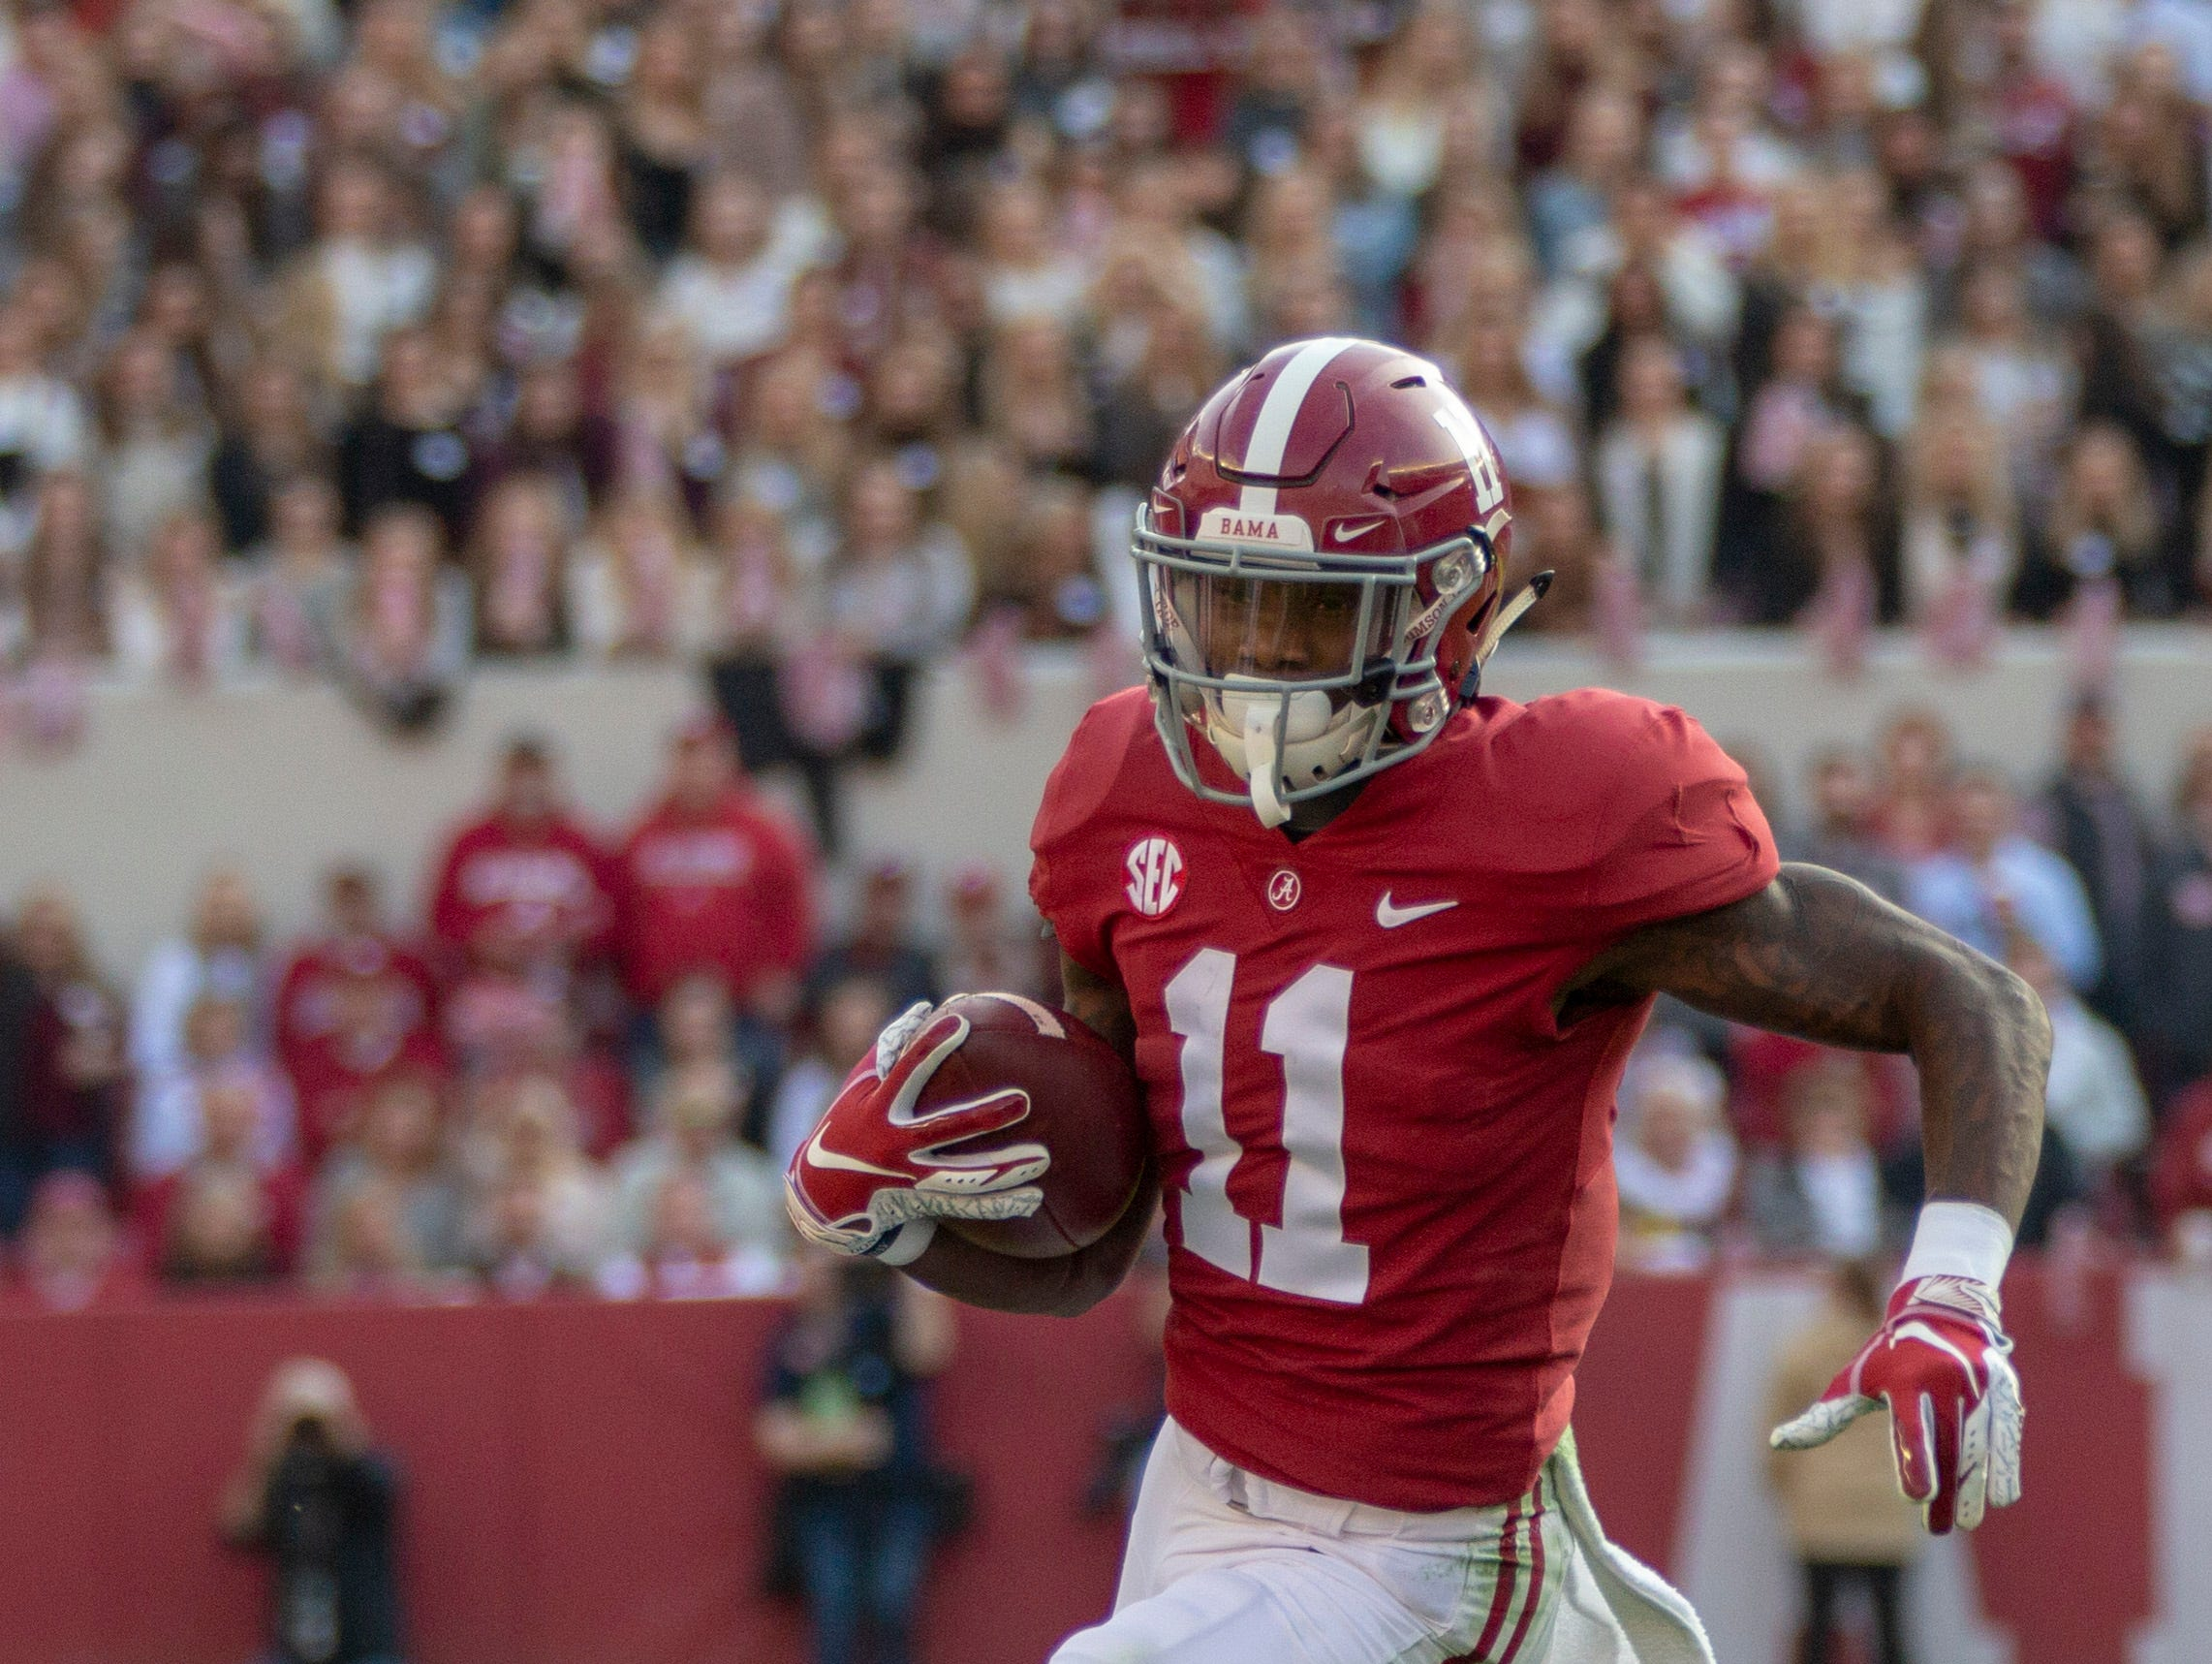 Alabama's Henry Ruggs III runs the ball for the Crimson Tide during the first quarter of the Iron Bowl.